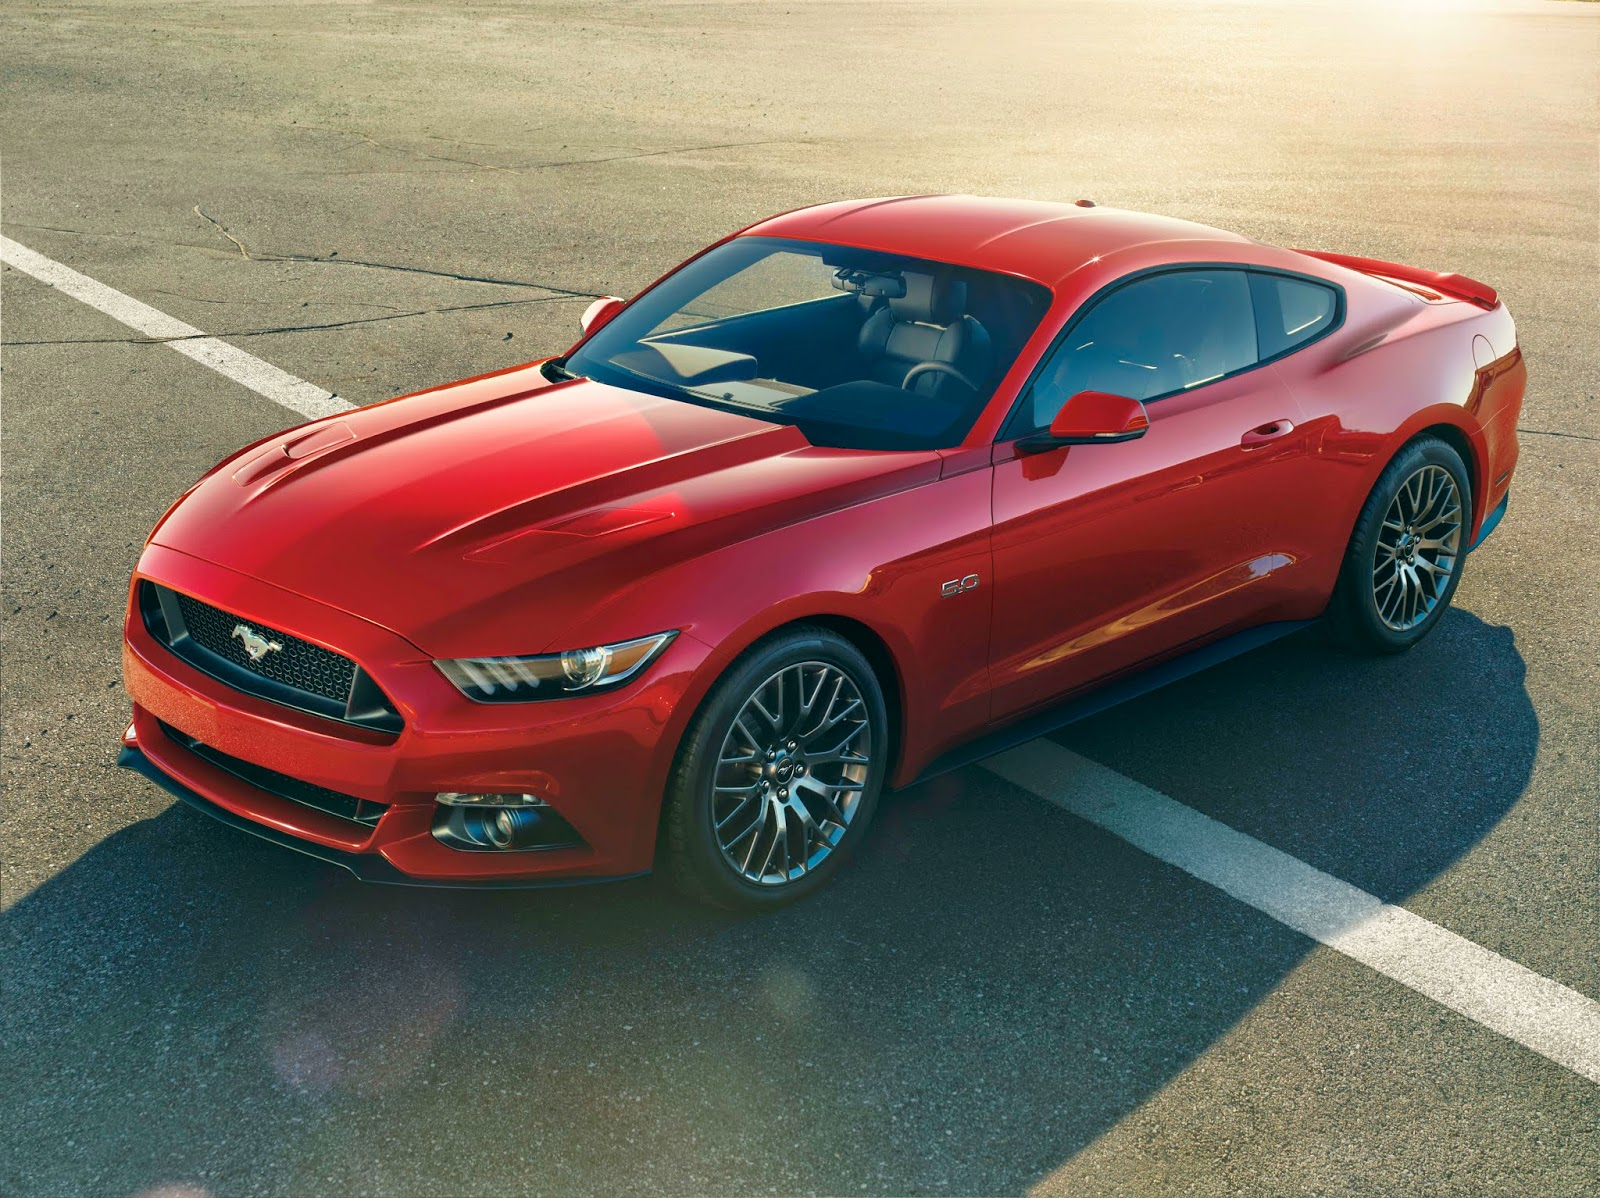 2015 Ford Mustang - O'Meara Ford Center